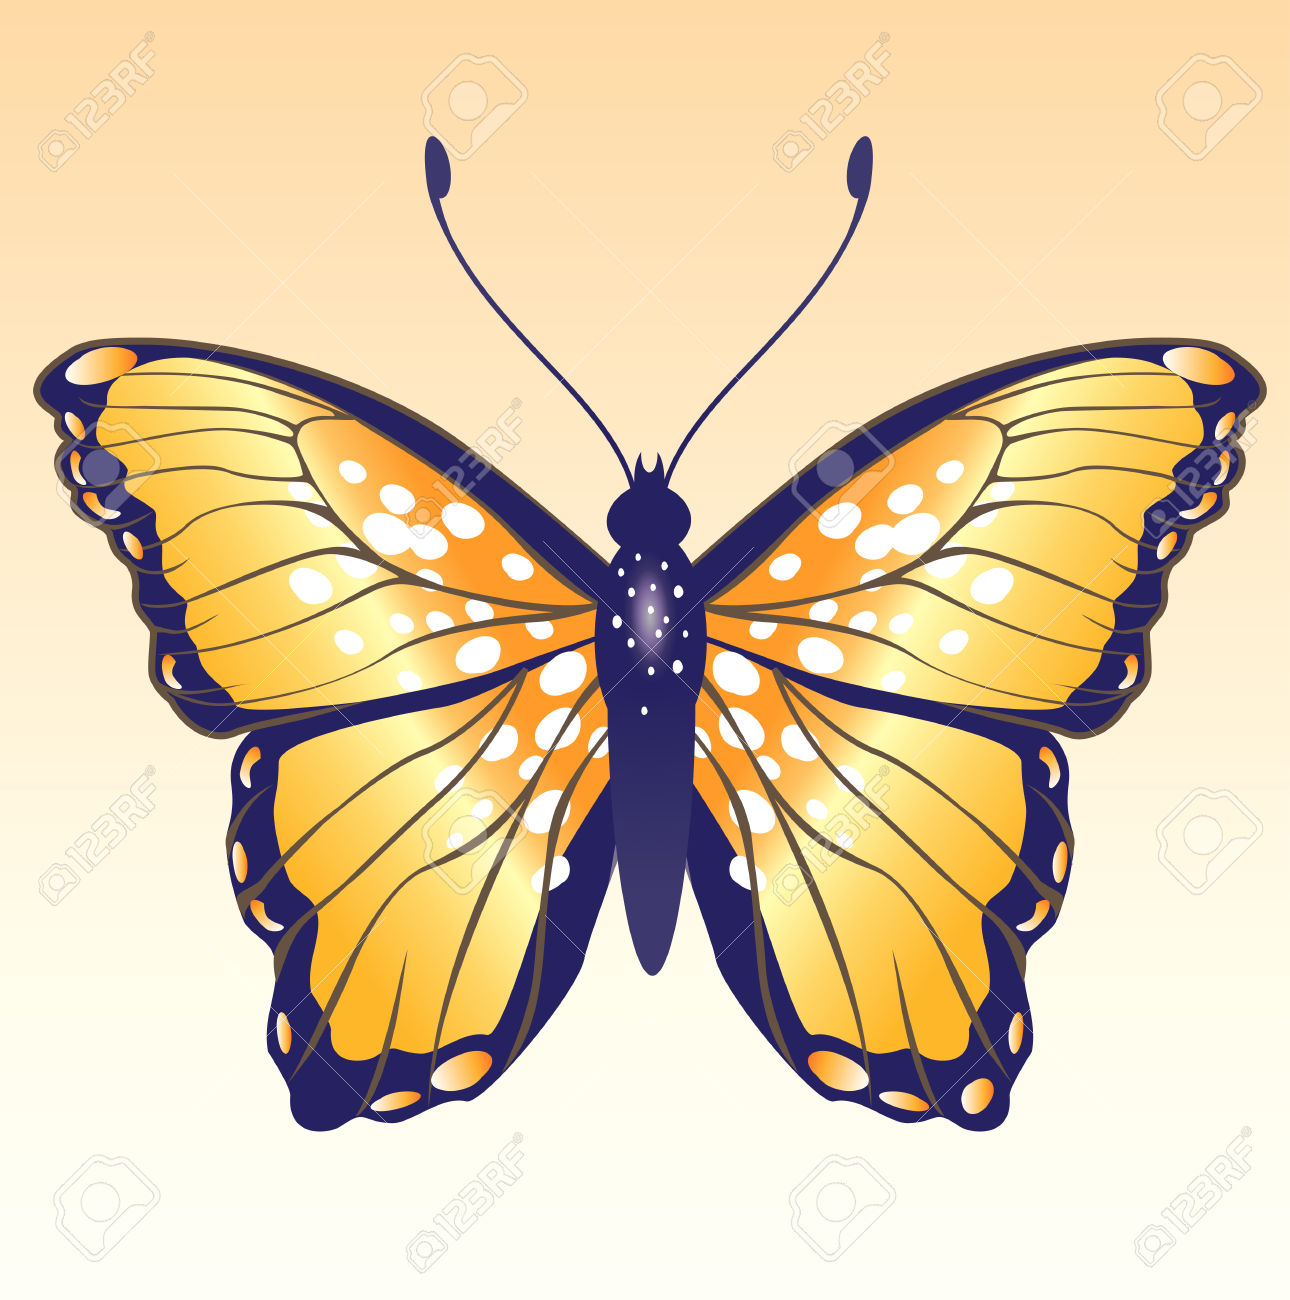 120 Peacock Moth Stock Vector Illustration And Royalty Free.